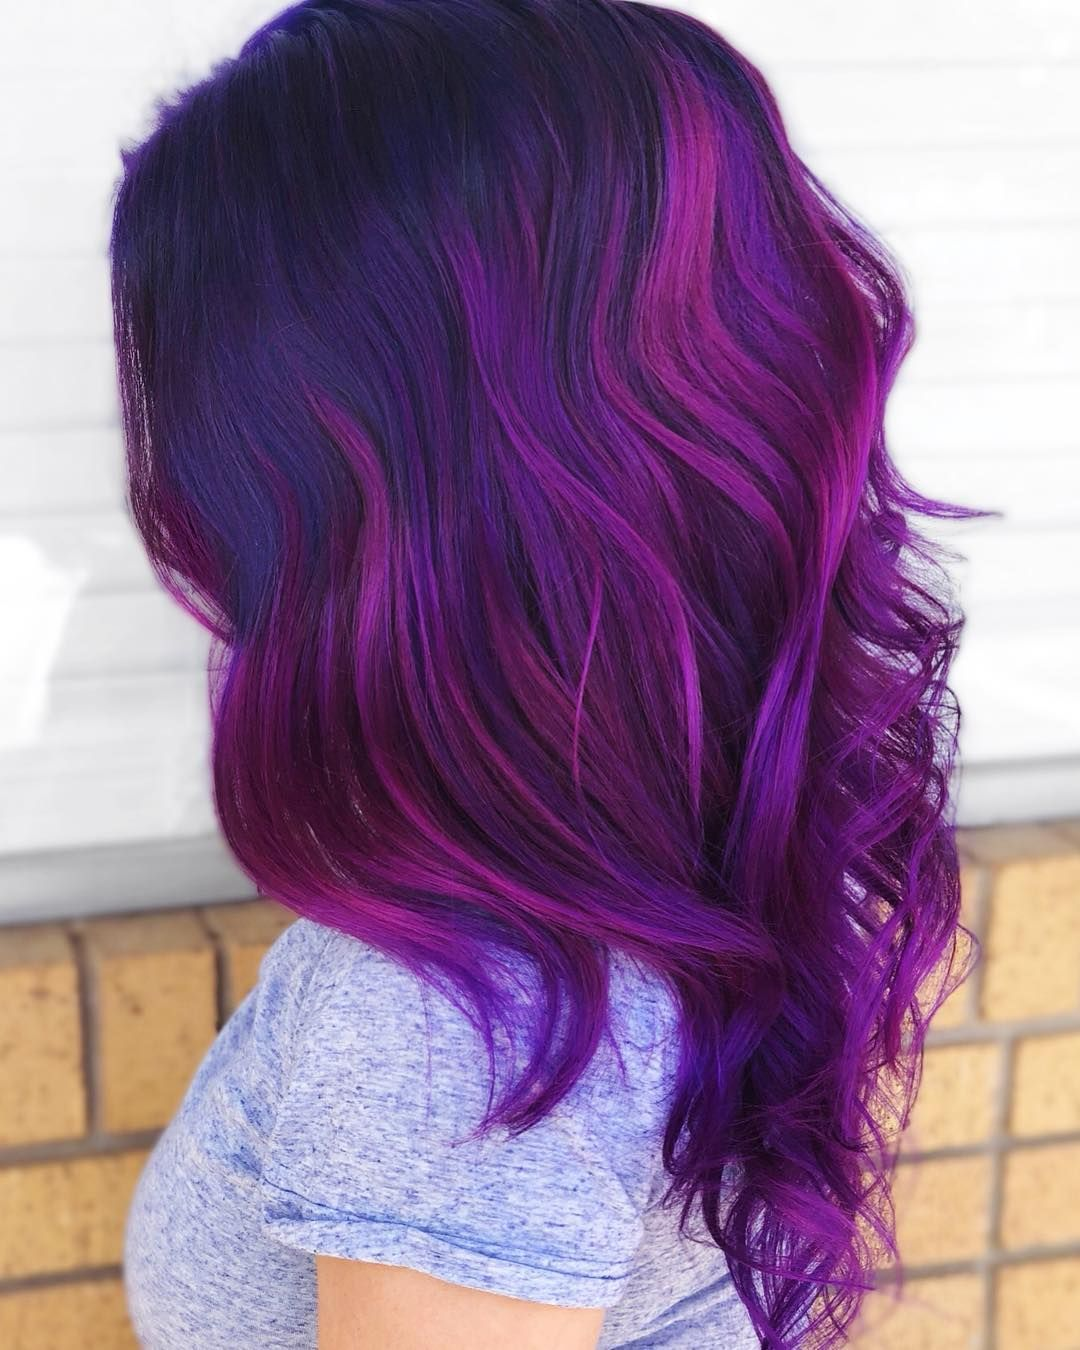 63 Purple Hair Color Ideas To Swoon Over Violet Purple Hair Dye Tips:  Color Chemist Updo&MU Artist